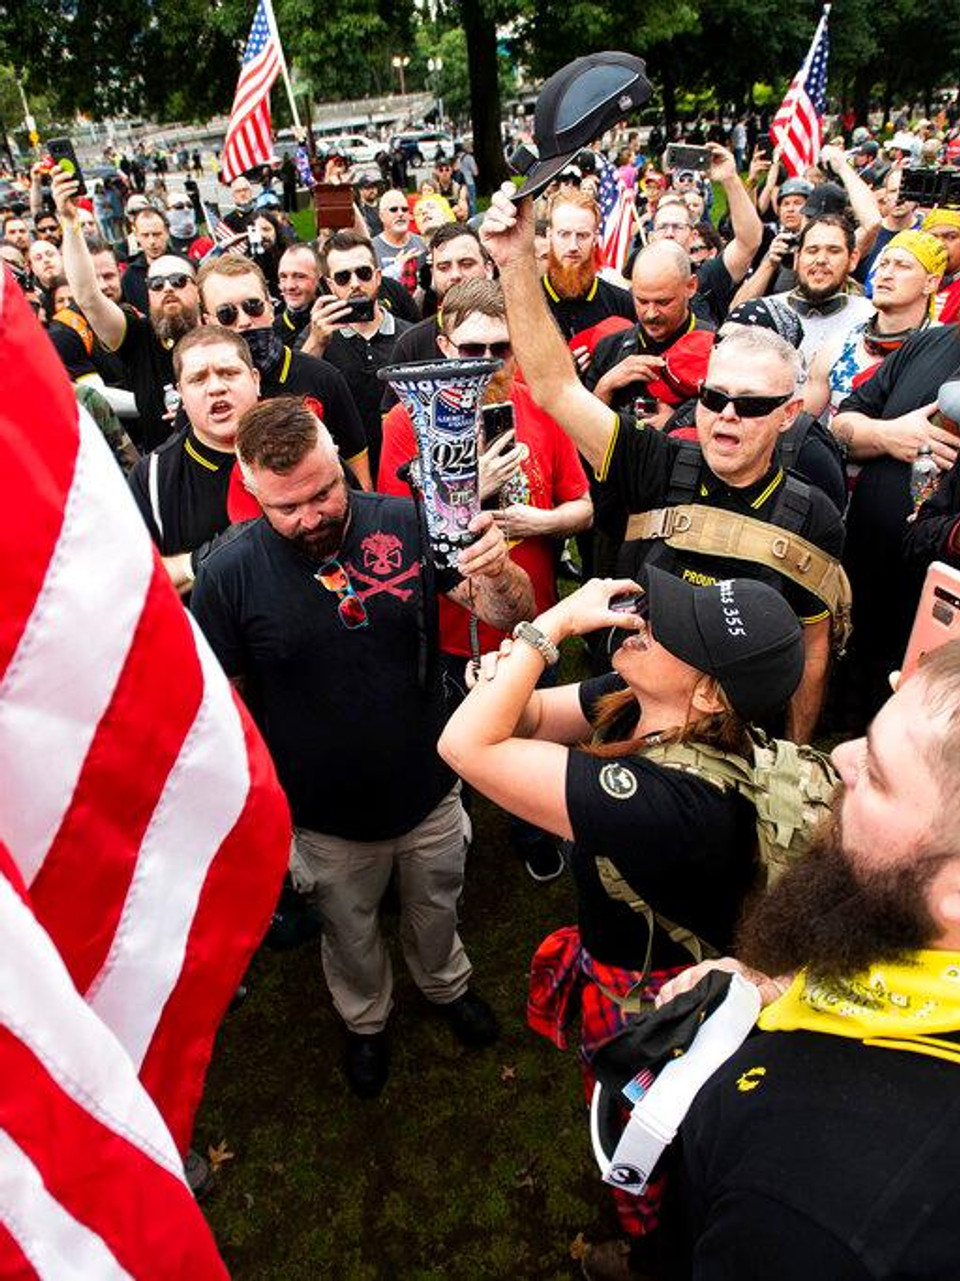 Proud Boys and community groups speak out ahead of Saturday protests | KATU